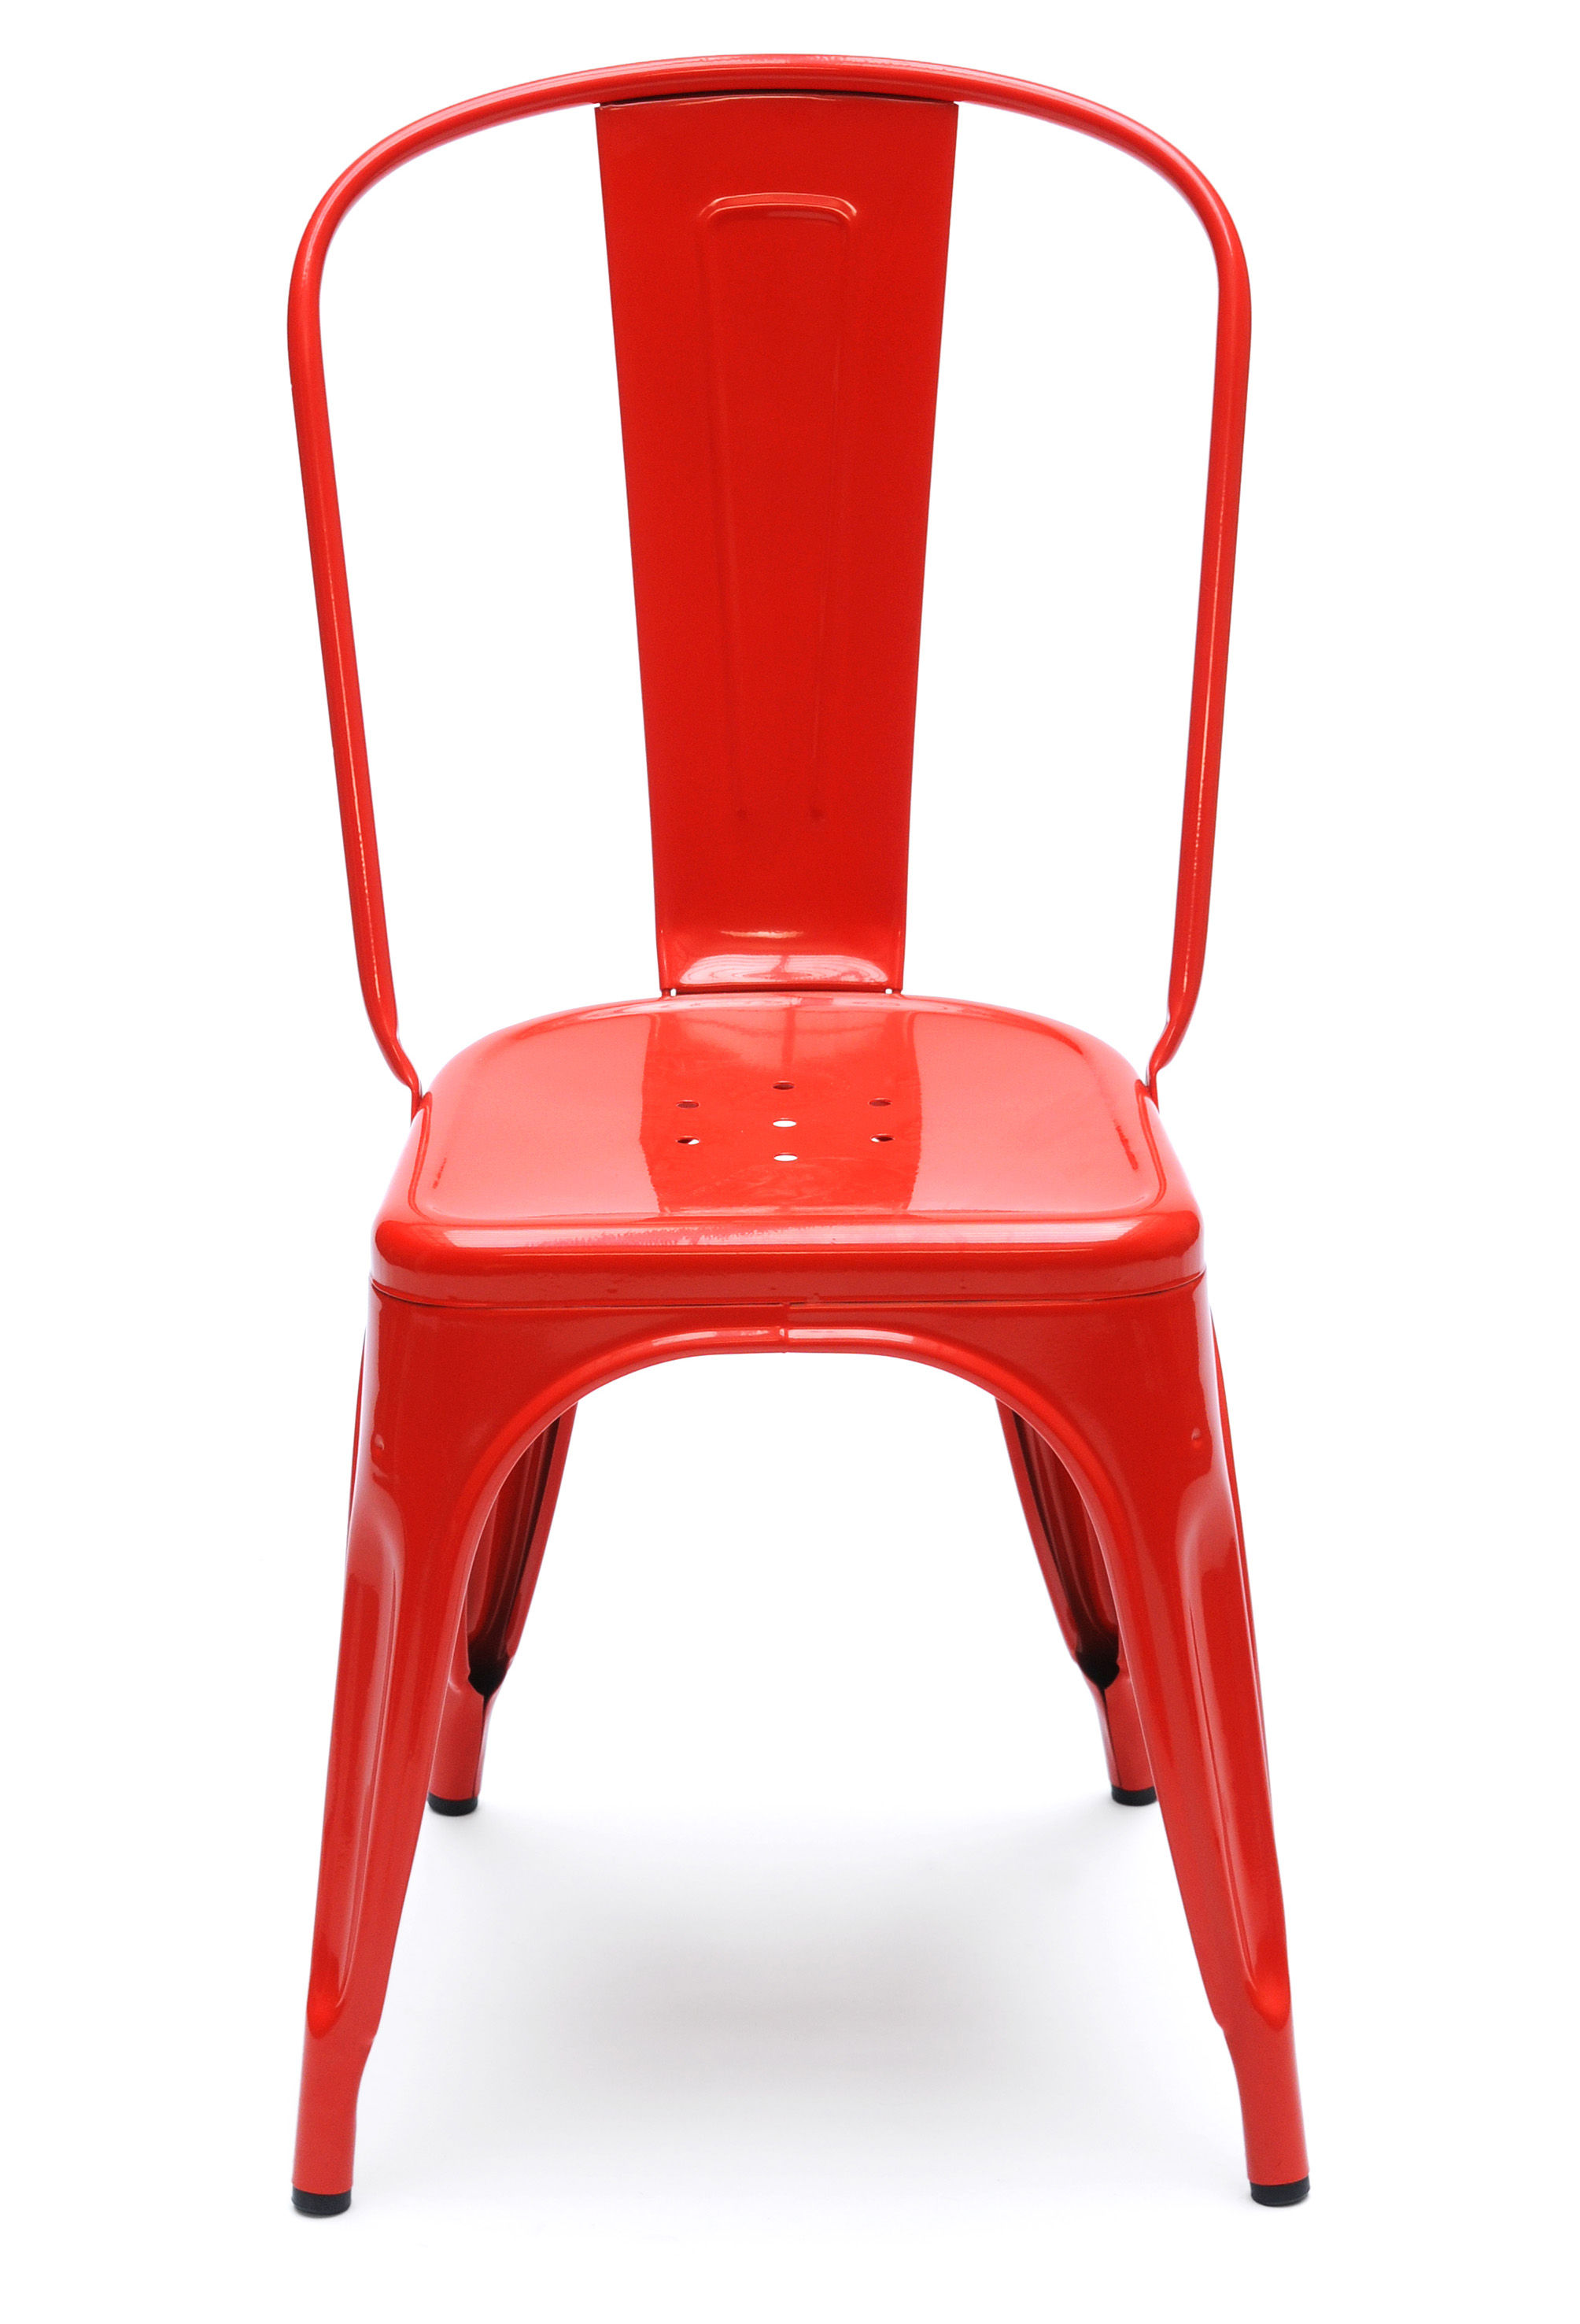 chair stacking tolix chairs steel by indoor a prod glossy bvb refa raw varnished